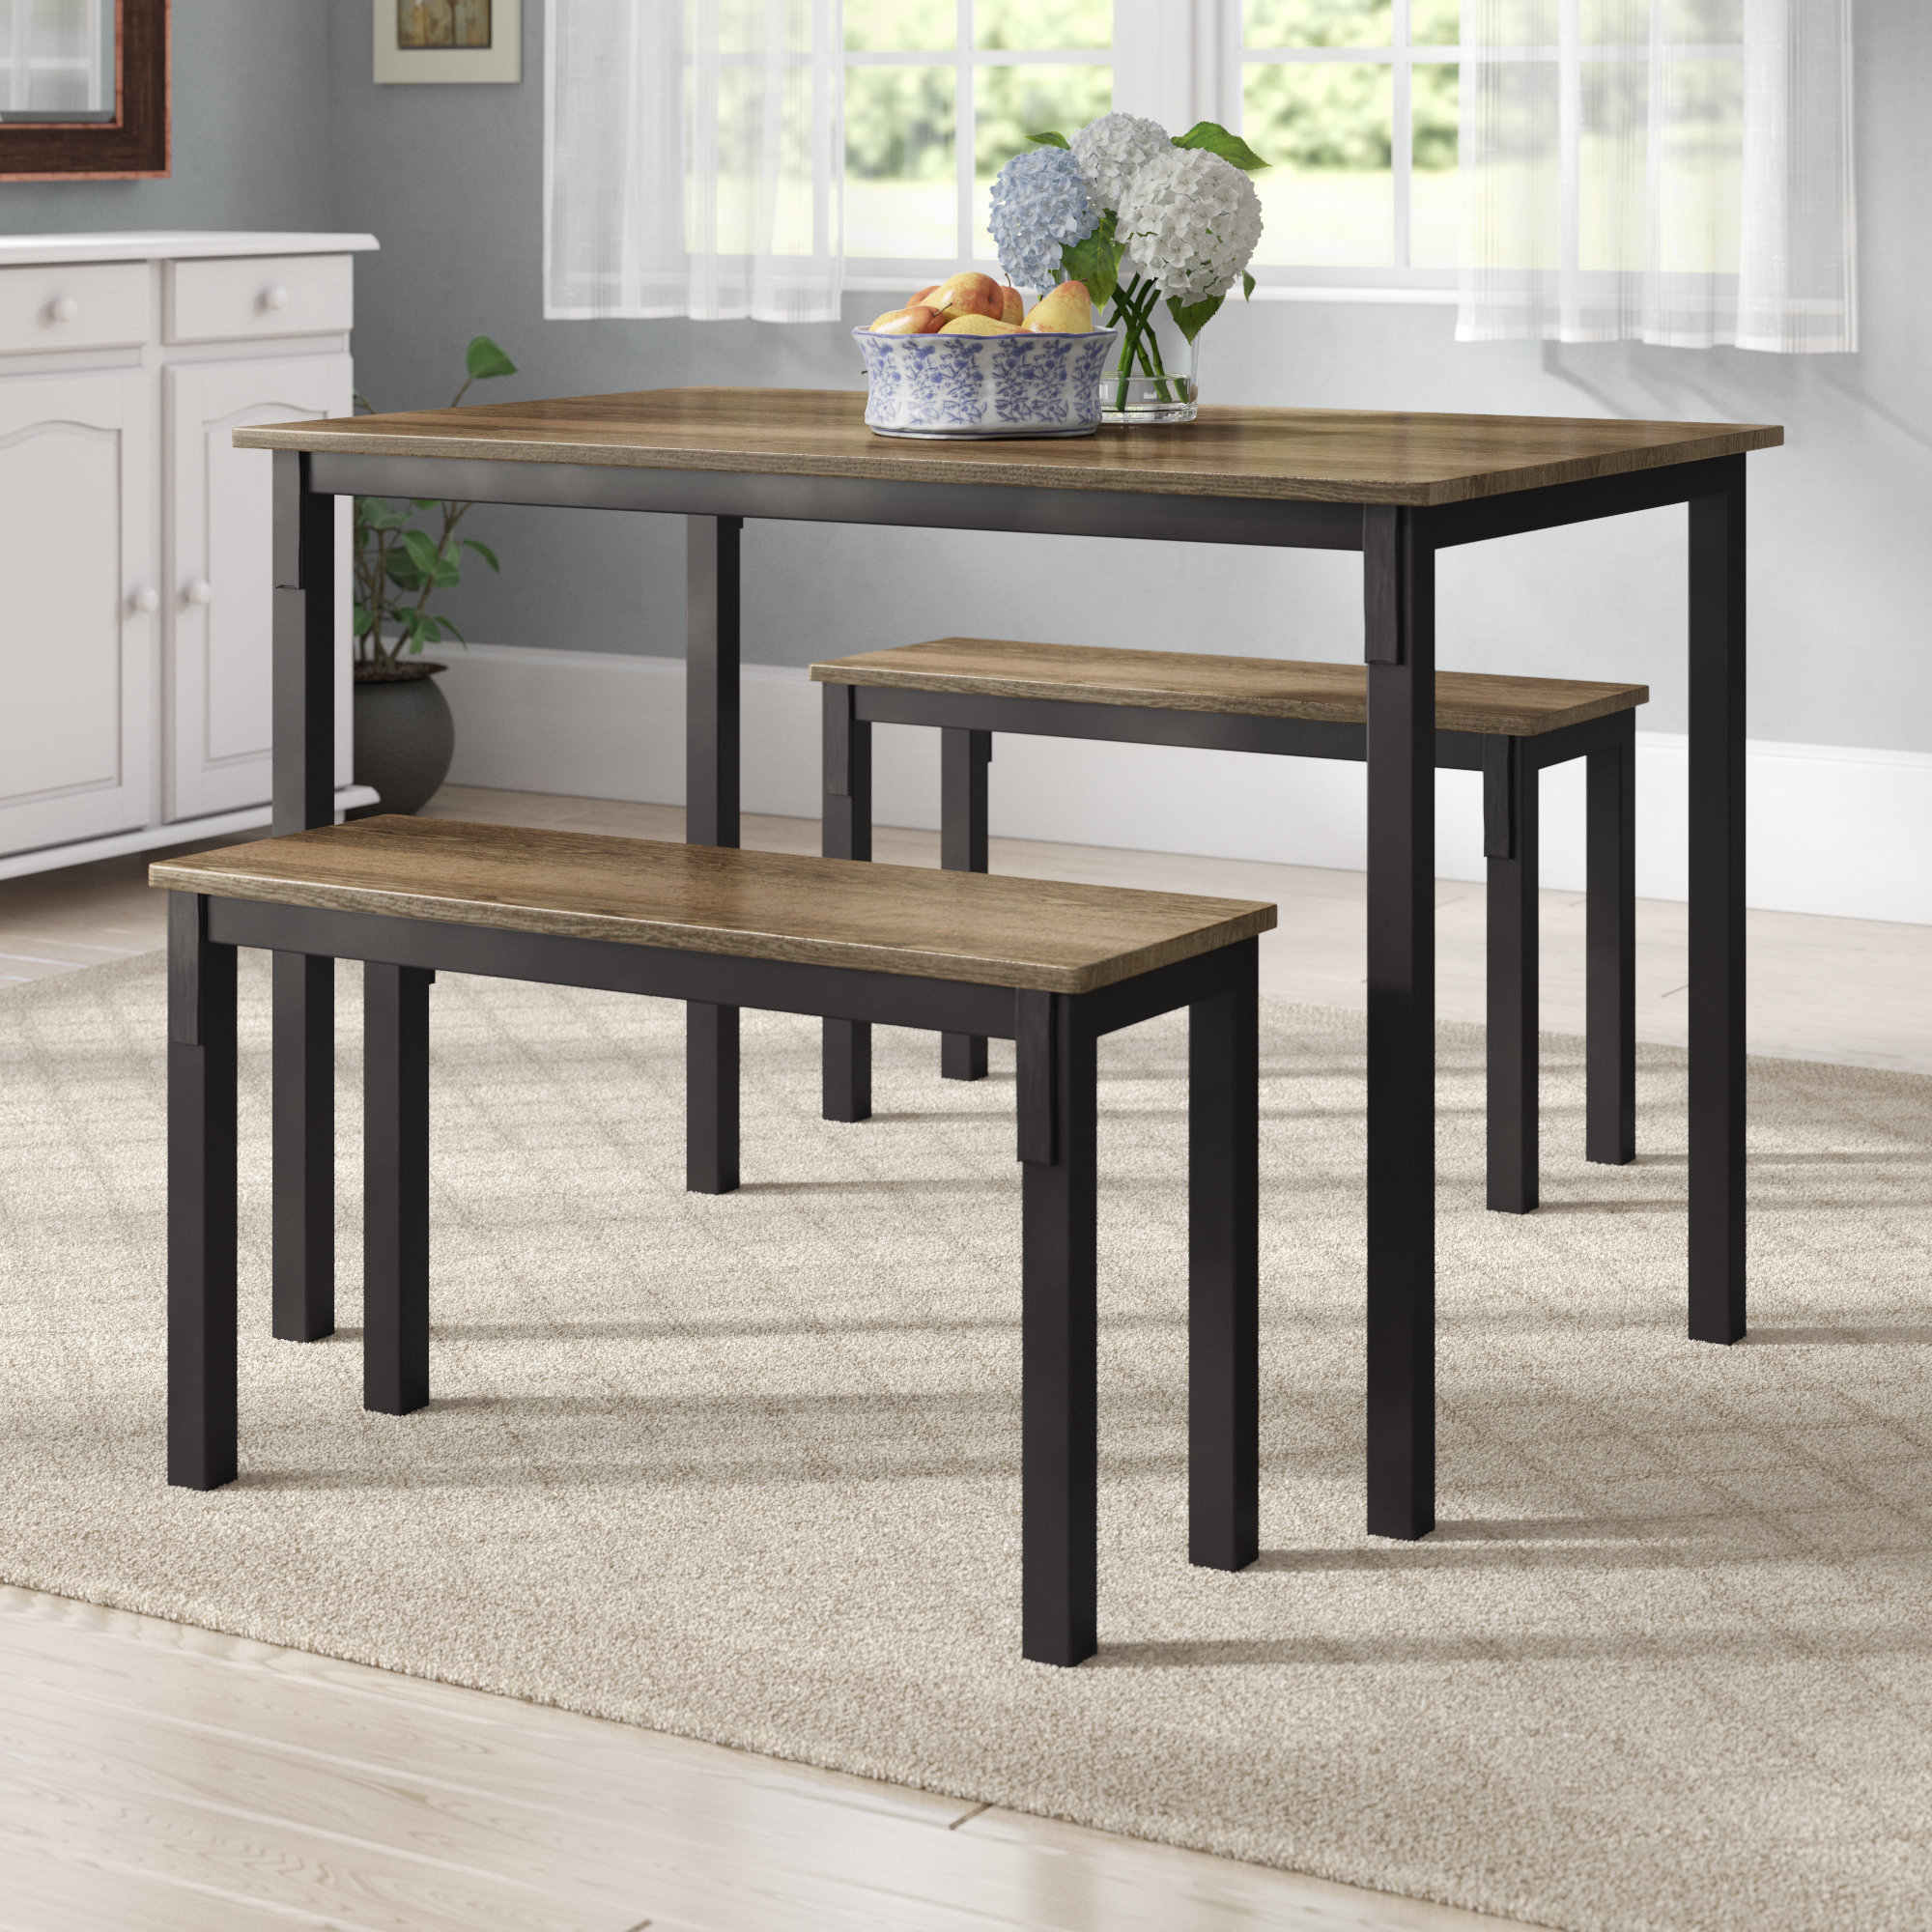 Newest Partin 3 Piece Dining Sets Regarding Andover Mills Rossiter 3 Piece Dining Set & Reviews (View 2 of 20)